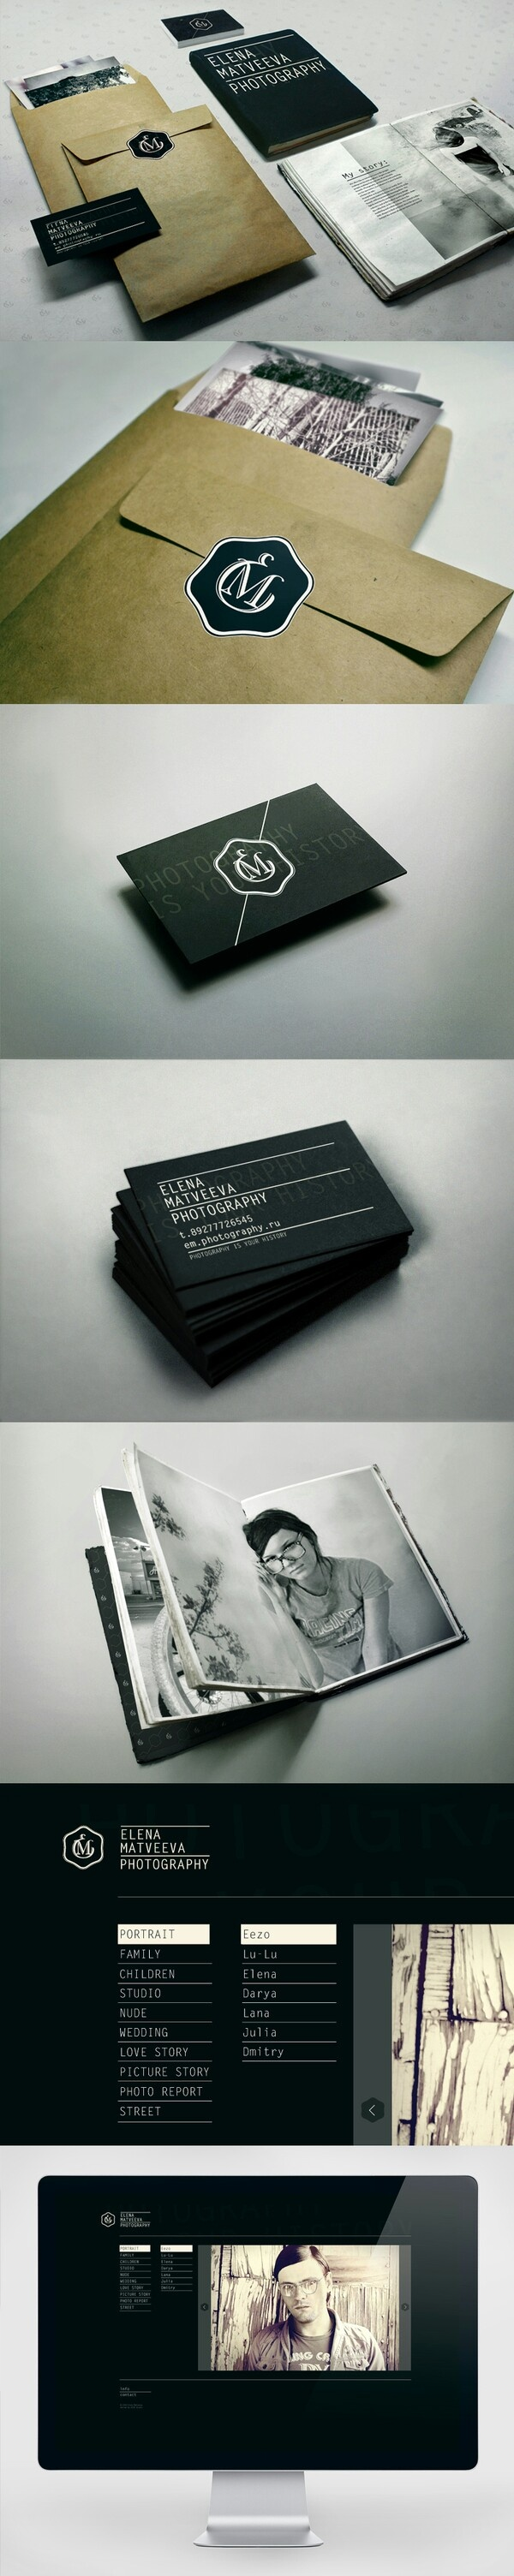 E.M. Photography branding, i like the style, change the colors